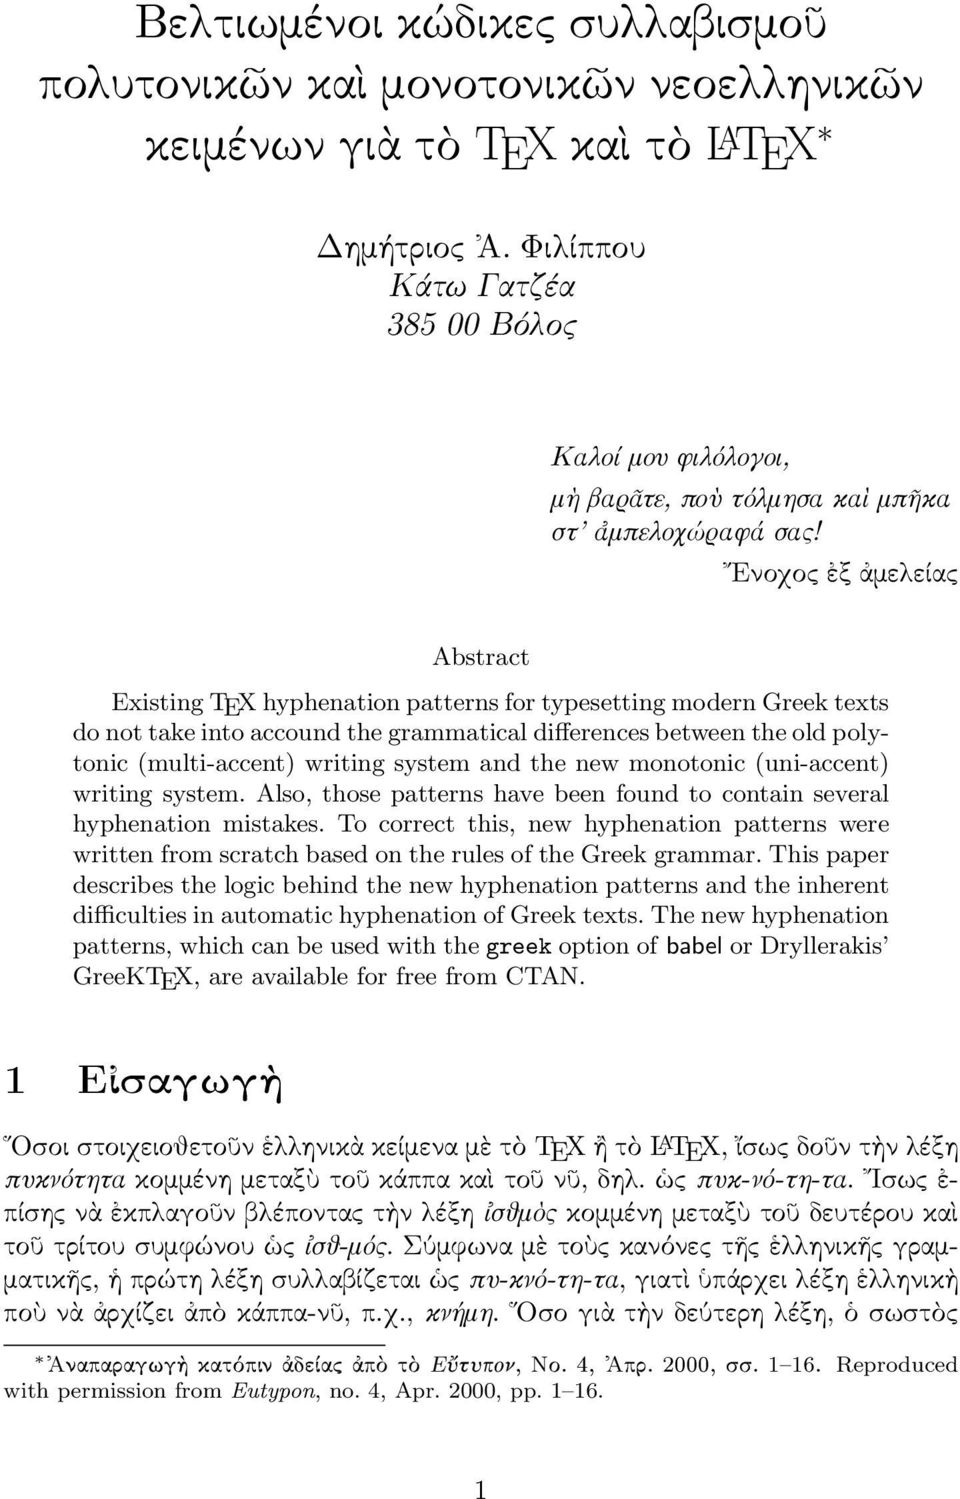 Ενοχος ἐξ ἀµελείας Abstract Existing TEX hyphenation patterns for typesetting modern Greek texts do not take into accound the grammatical differences between the old polytonic (multi-accent) writing